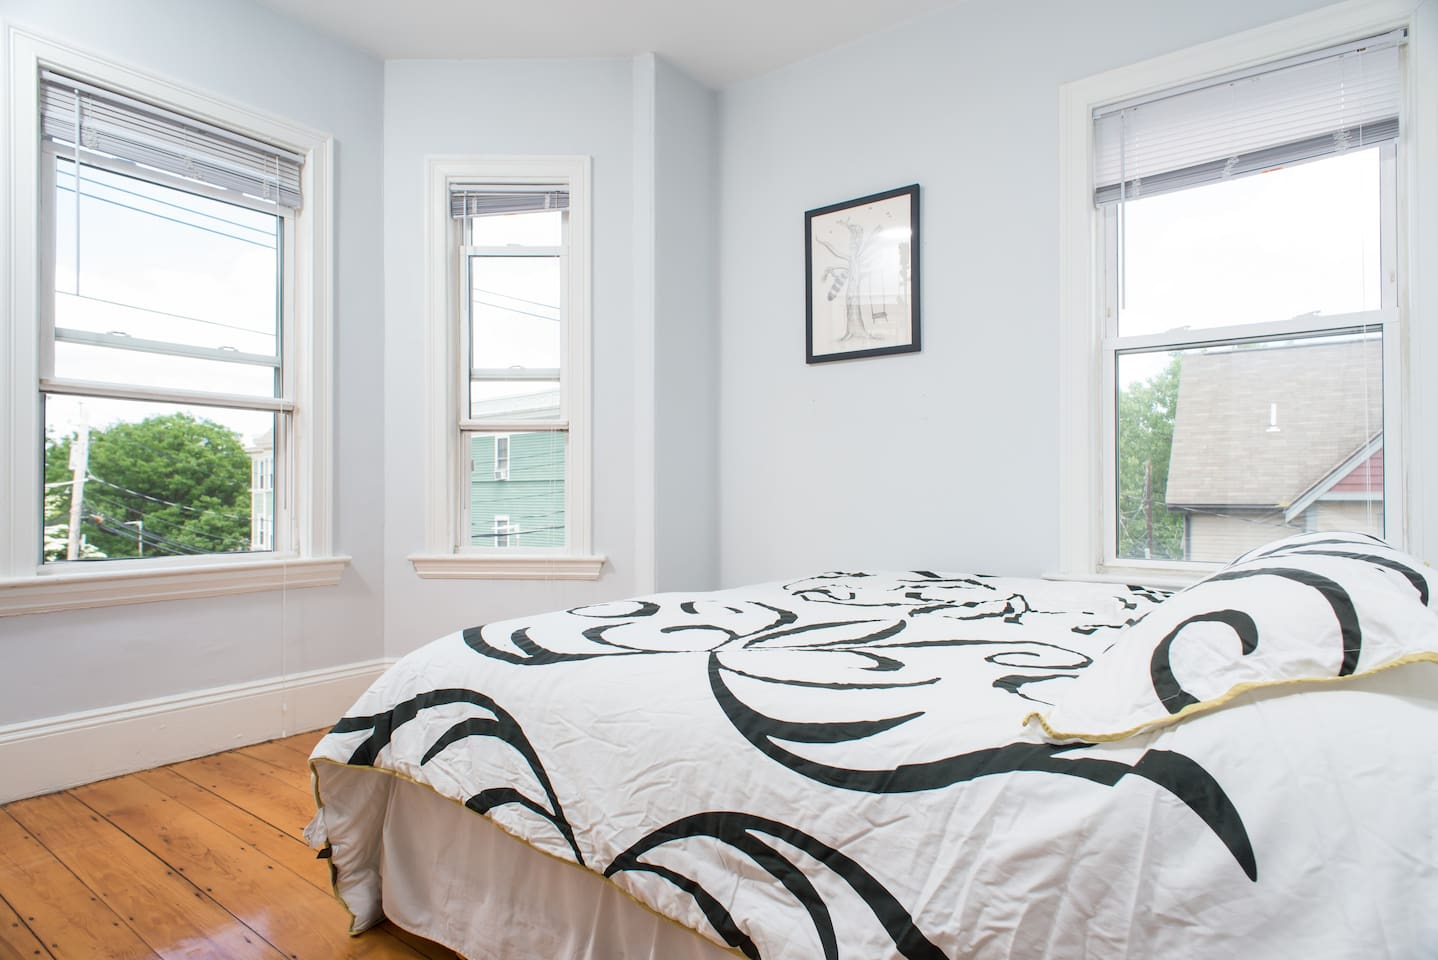 Guest bedroom with king sized bed (2 twin beds pushed together)